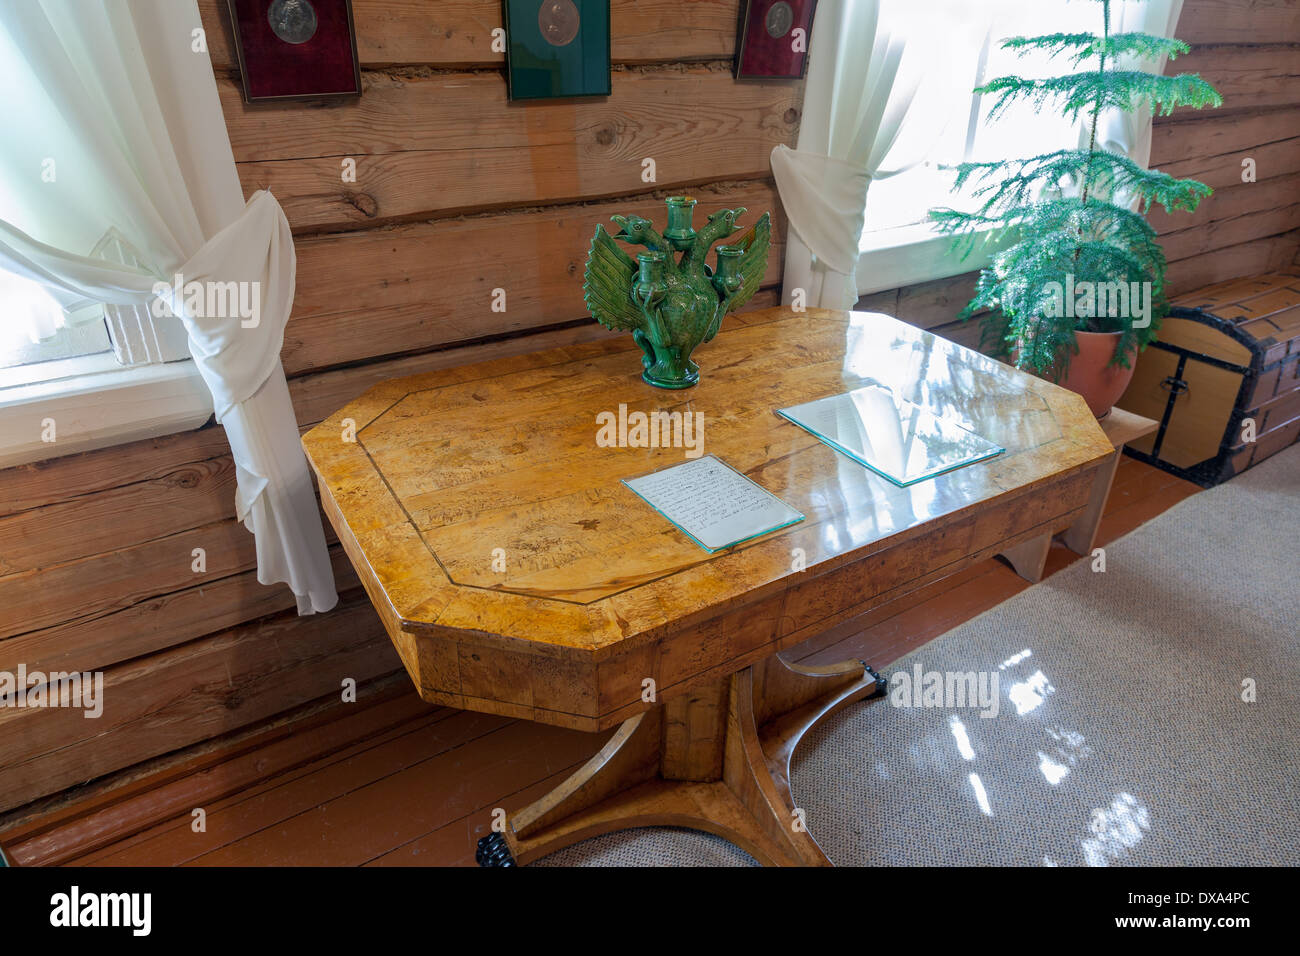 The interior of the museum Suvorov. Dining room with samovar. Generalissimo A. Suvorov is a great russian warlord - Stock Image